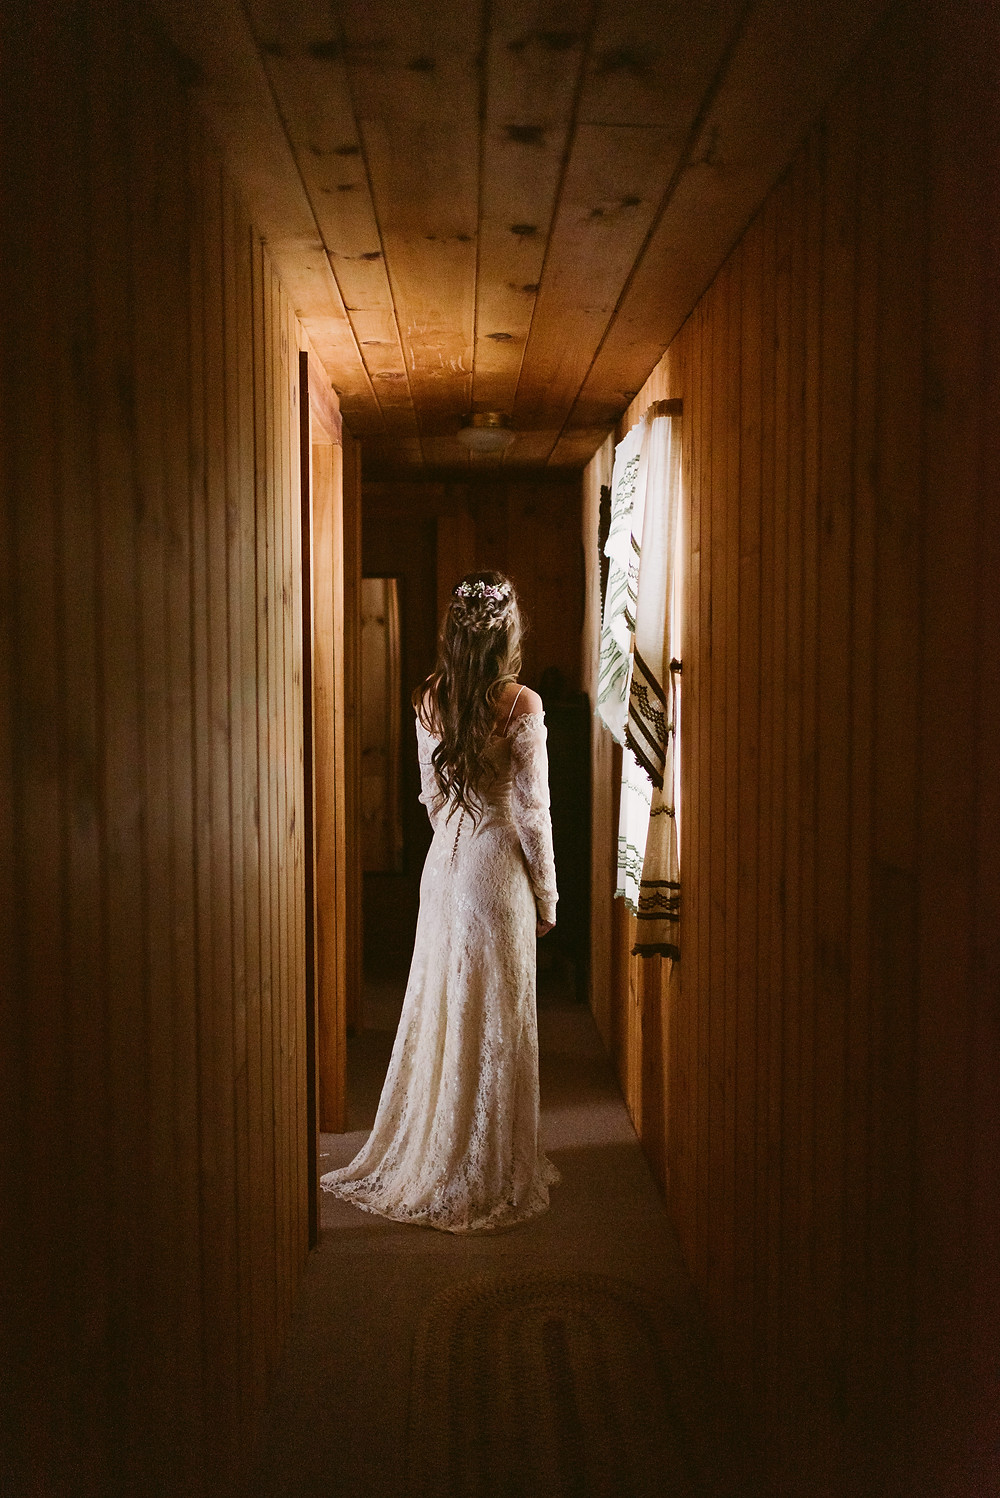 Bridal portraits in the window light of her family's cabin in upstate New York